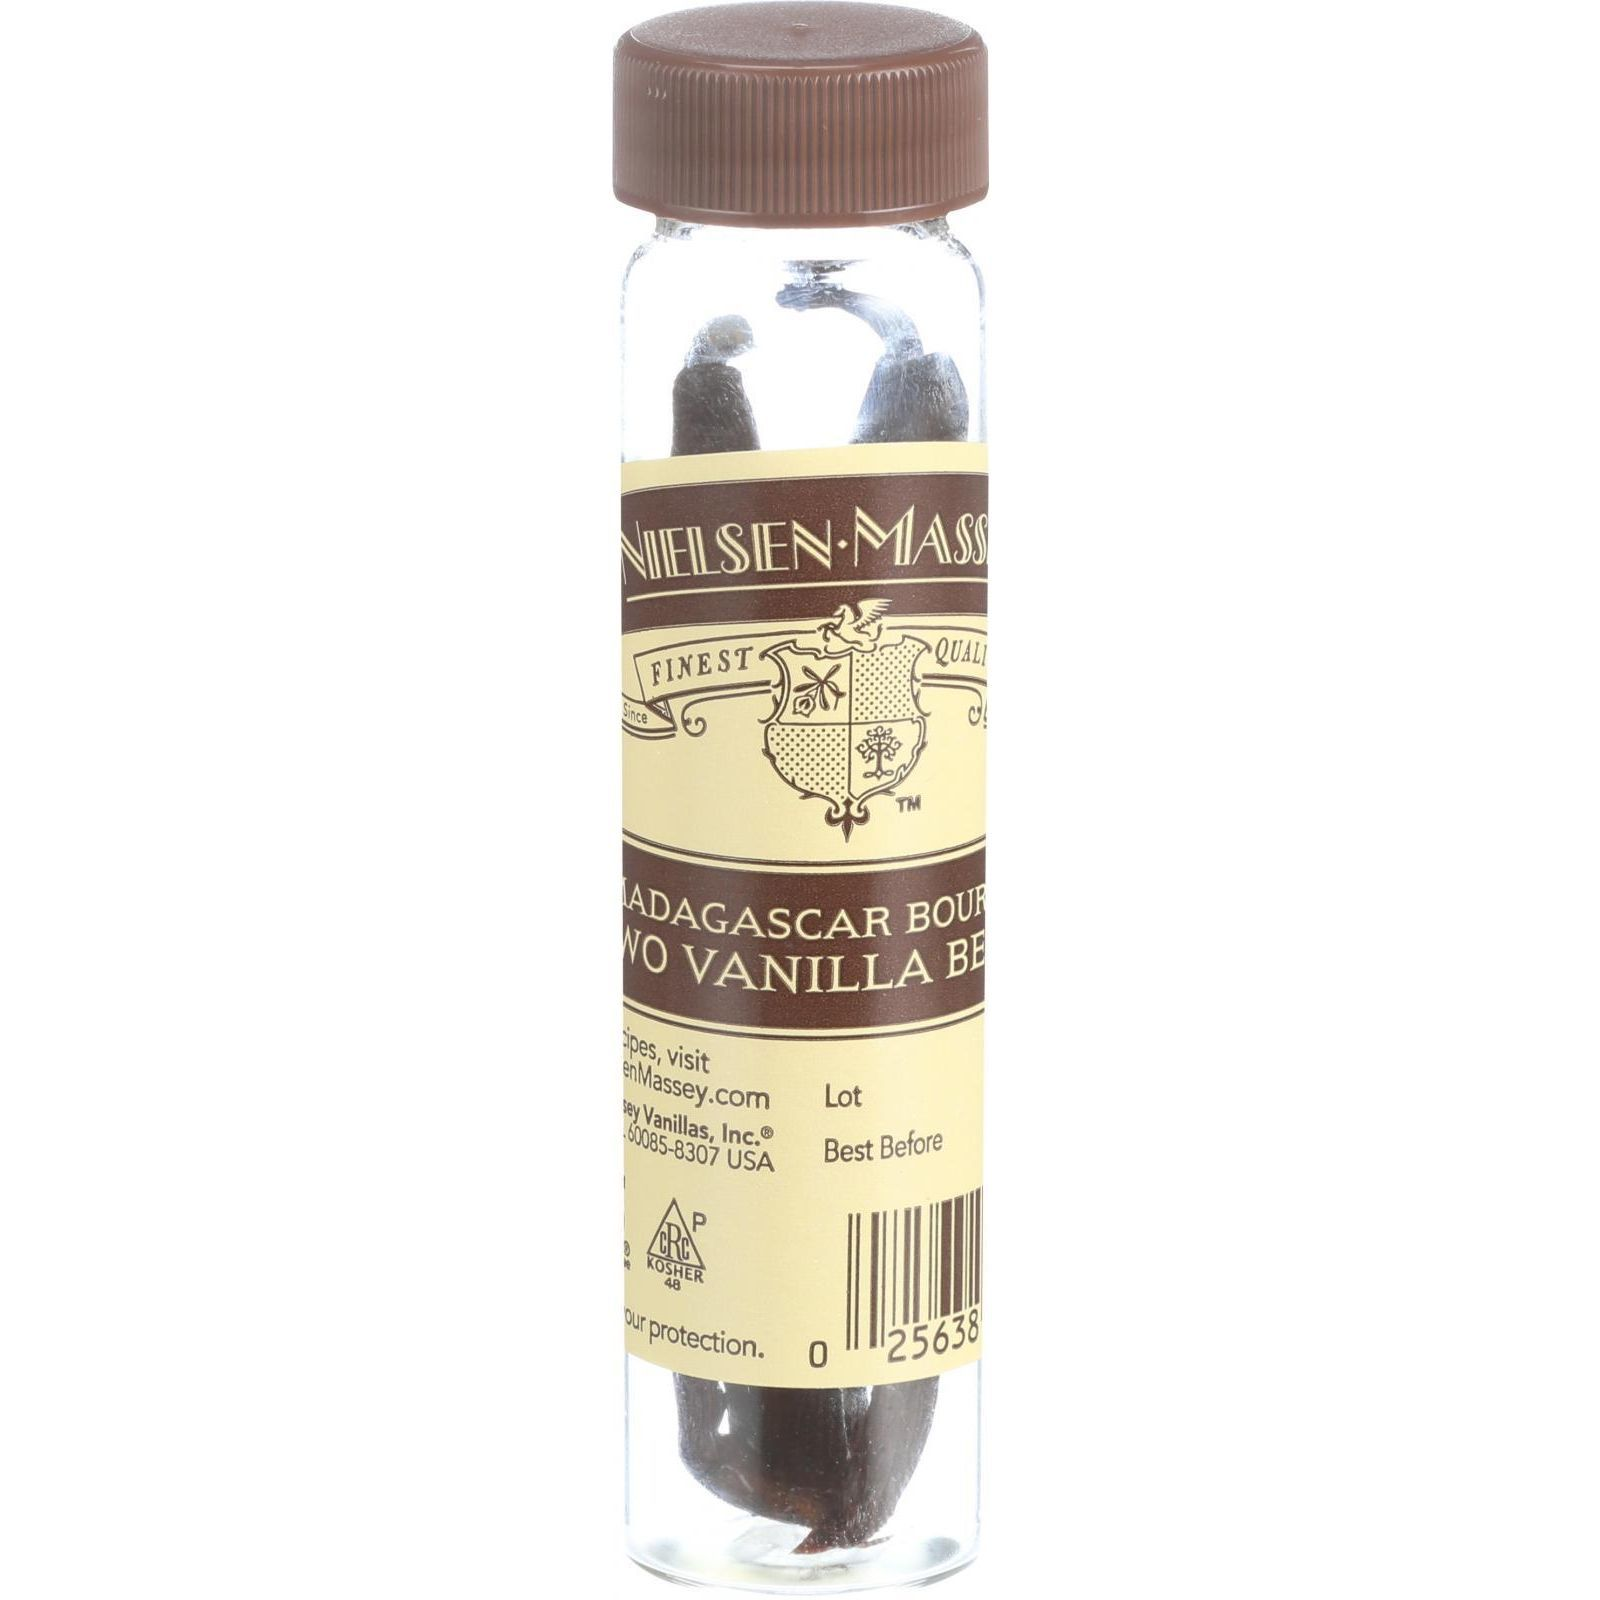 Nielsen-Massey Whole Vanilla Beans - Madagascar Boubon - 2 Count